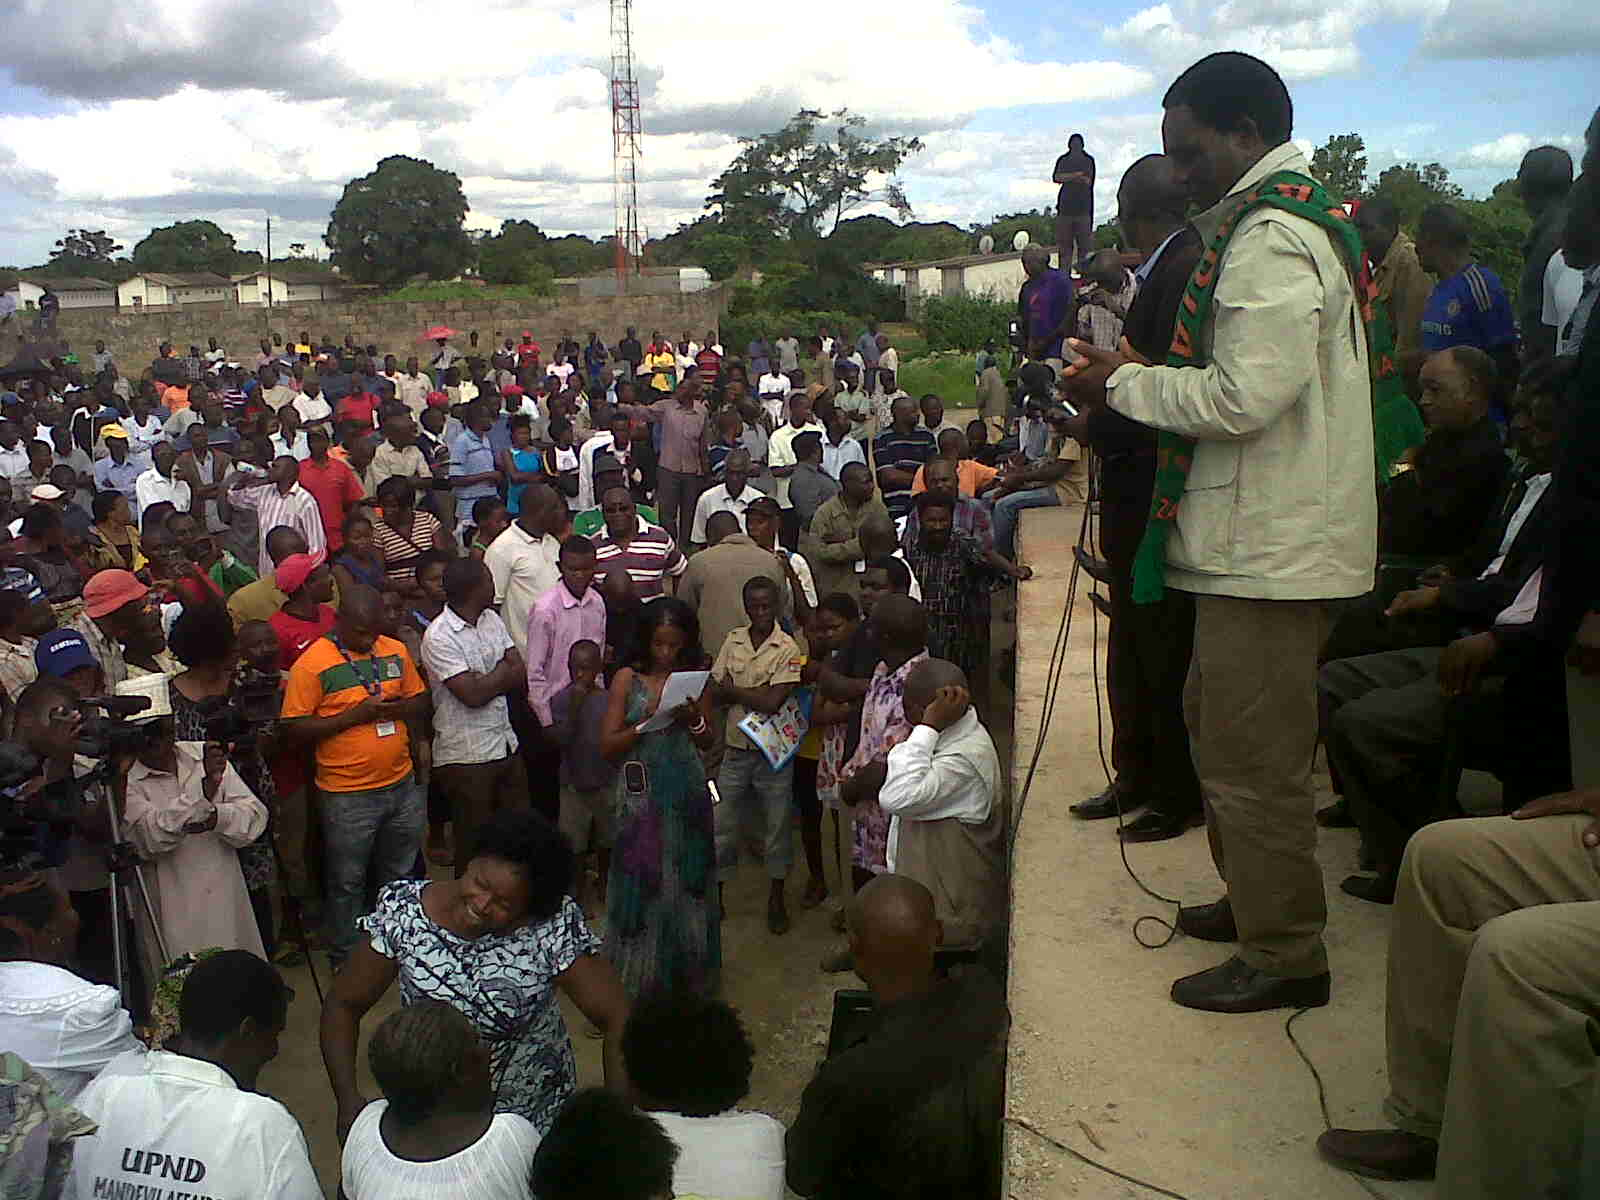 HH declares successful rally victory for democracy, calls on Zambians to rebase PF in 2016